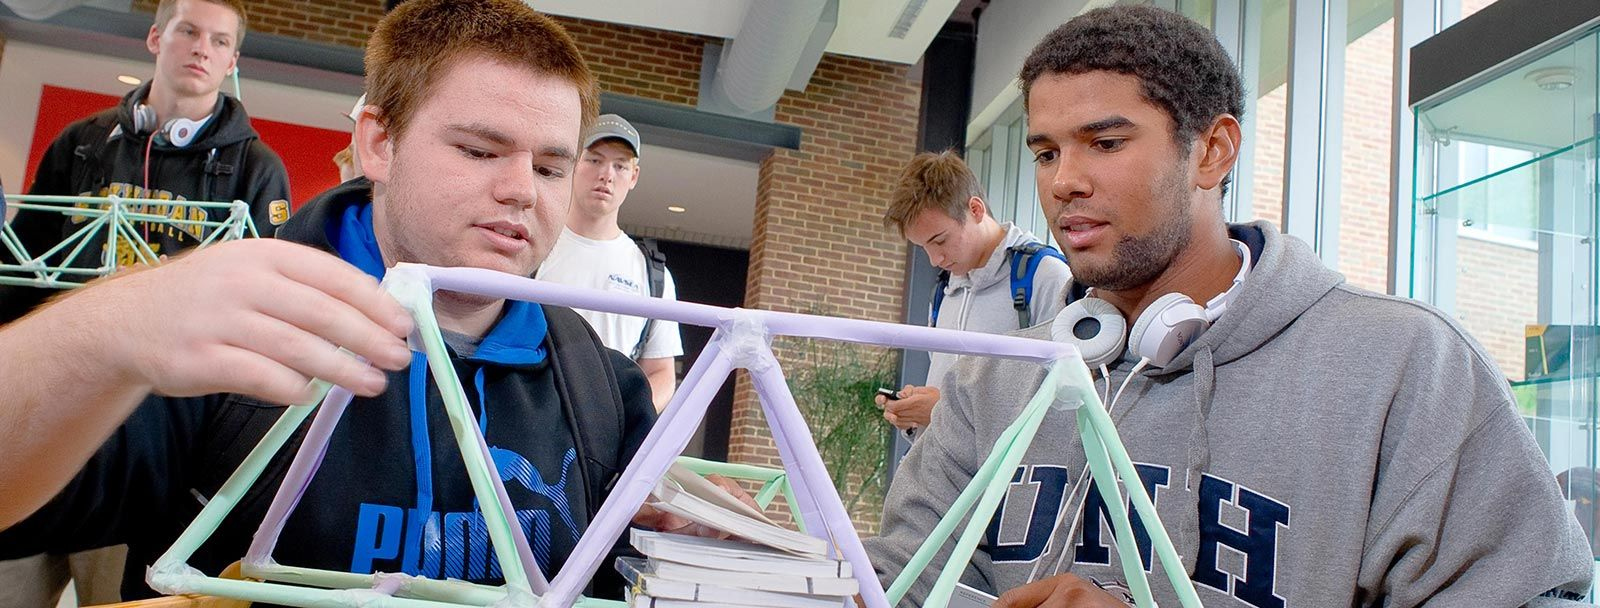 Two college-age male students build a bridge out of straws and tape